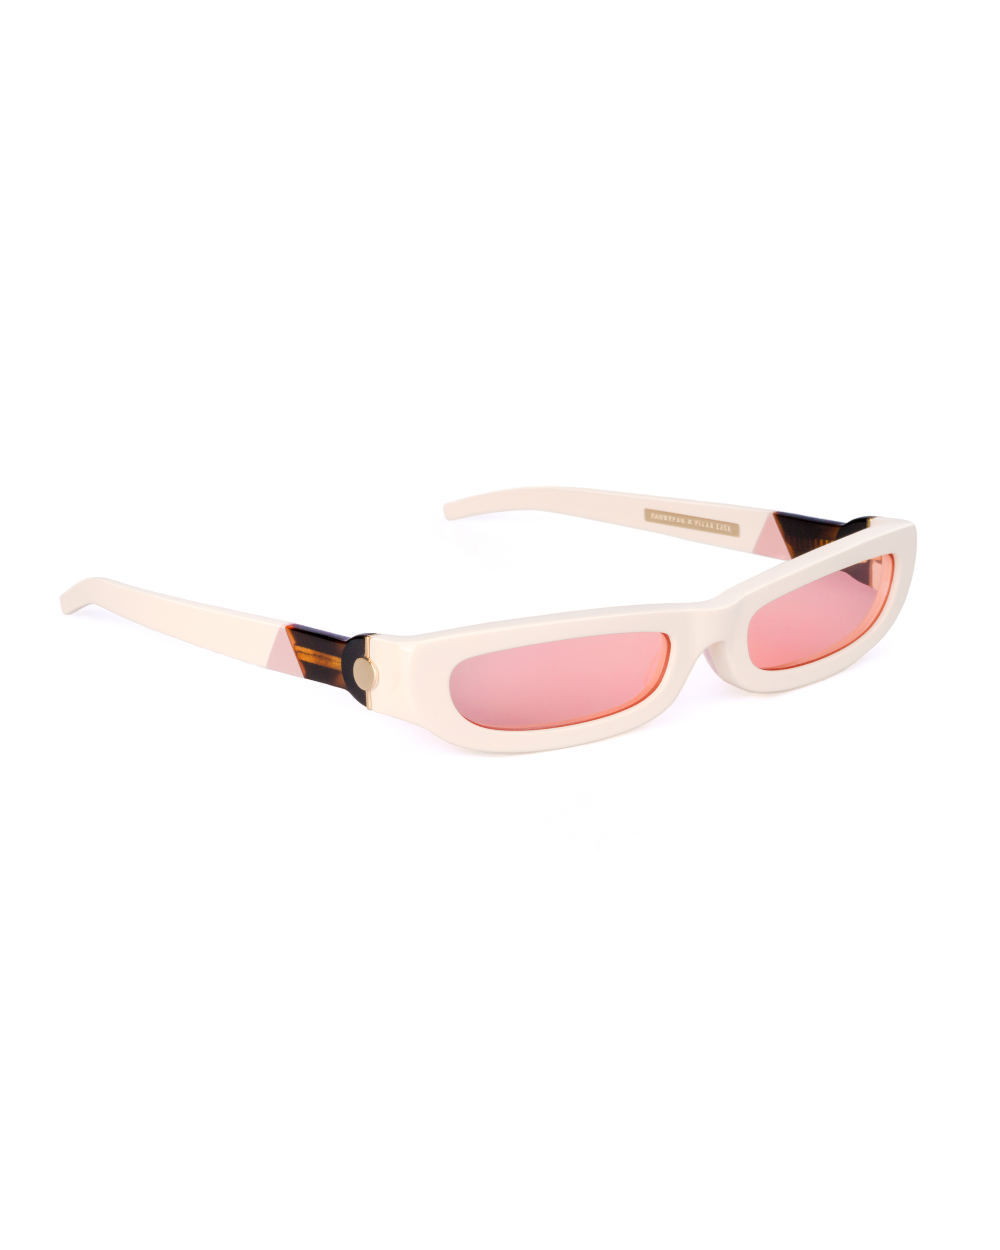 Model SHARP. Sun. Glossy Ivory & Pink